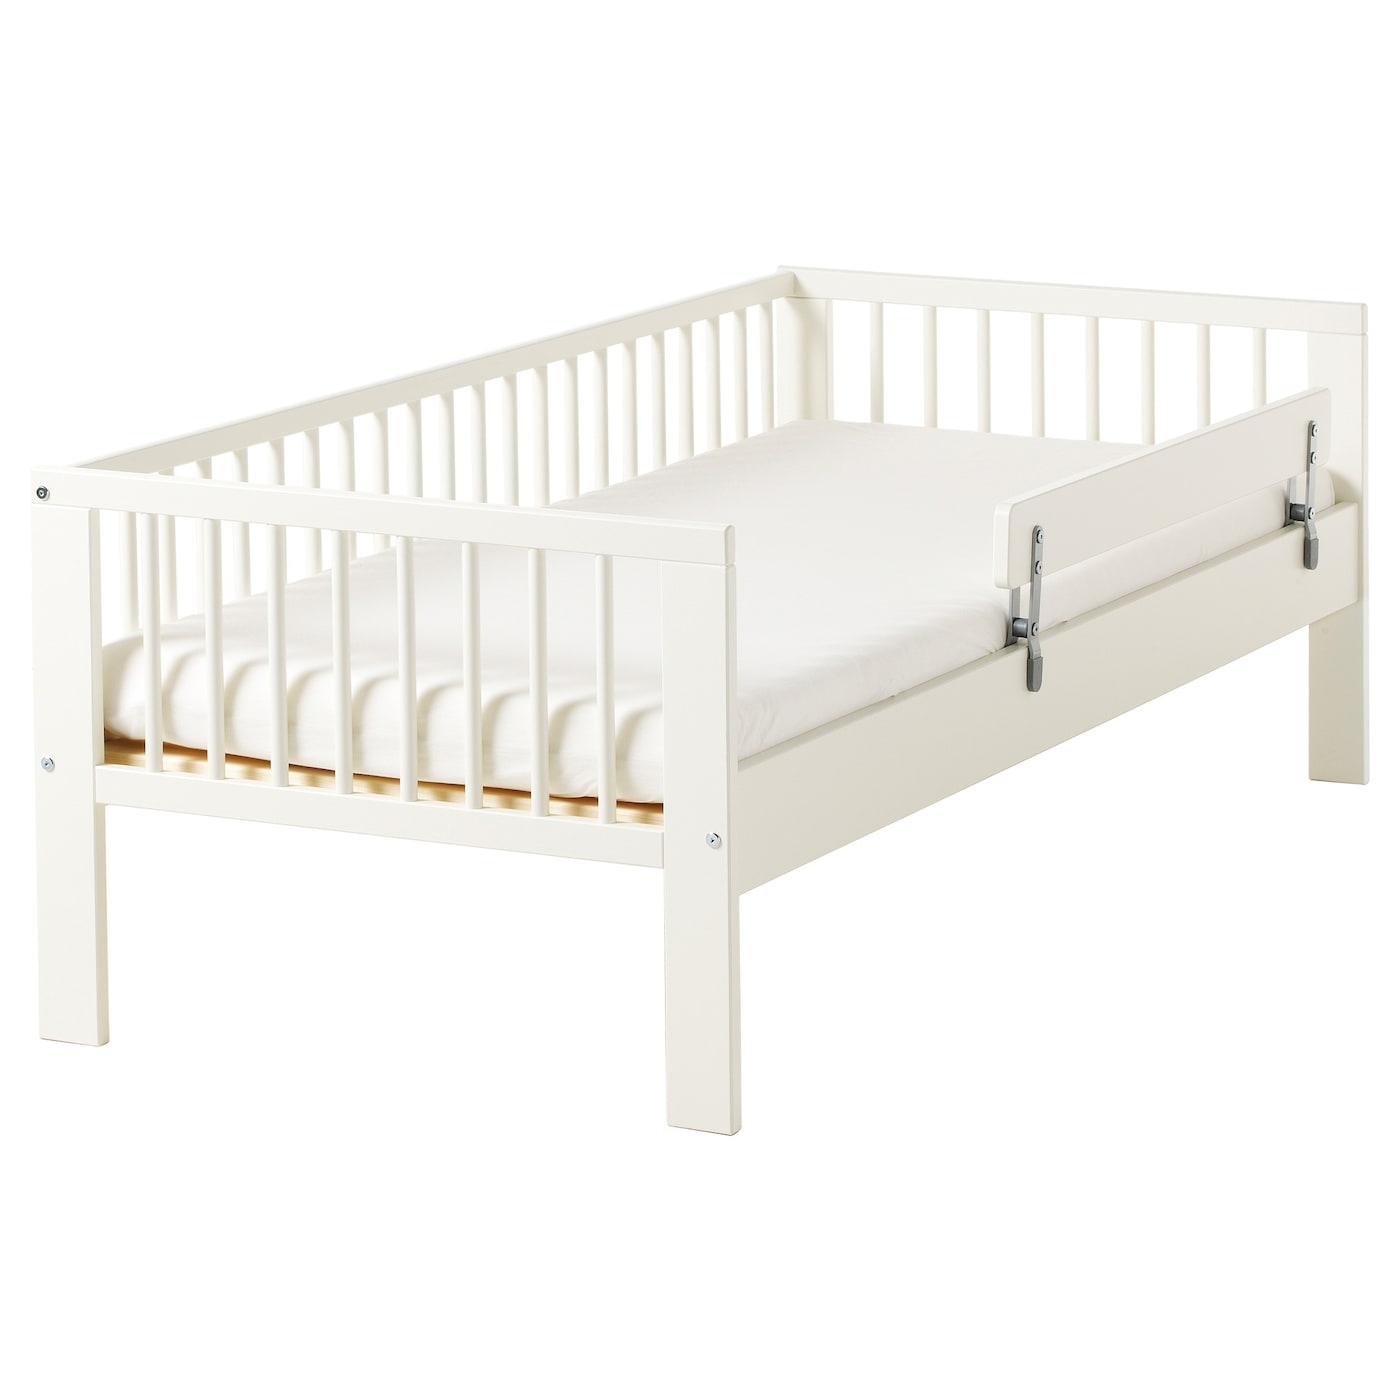 gulliver cadre lit sommier lattes blanc 70 x 160 cm ikea. Black Bedroom Furniture Sets. Home Design Ideas